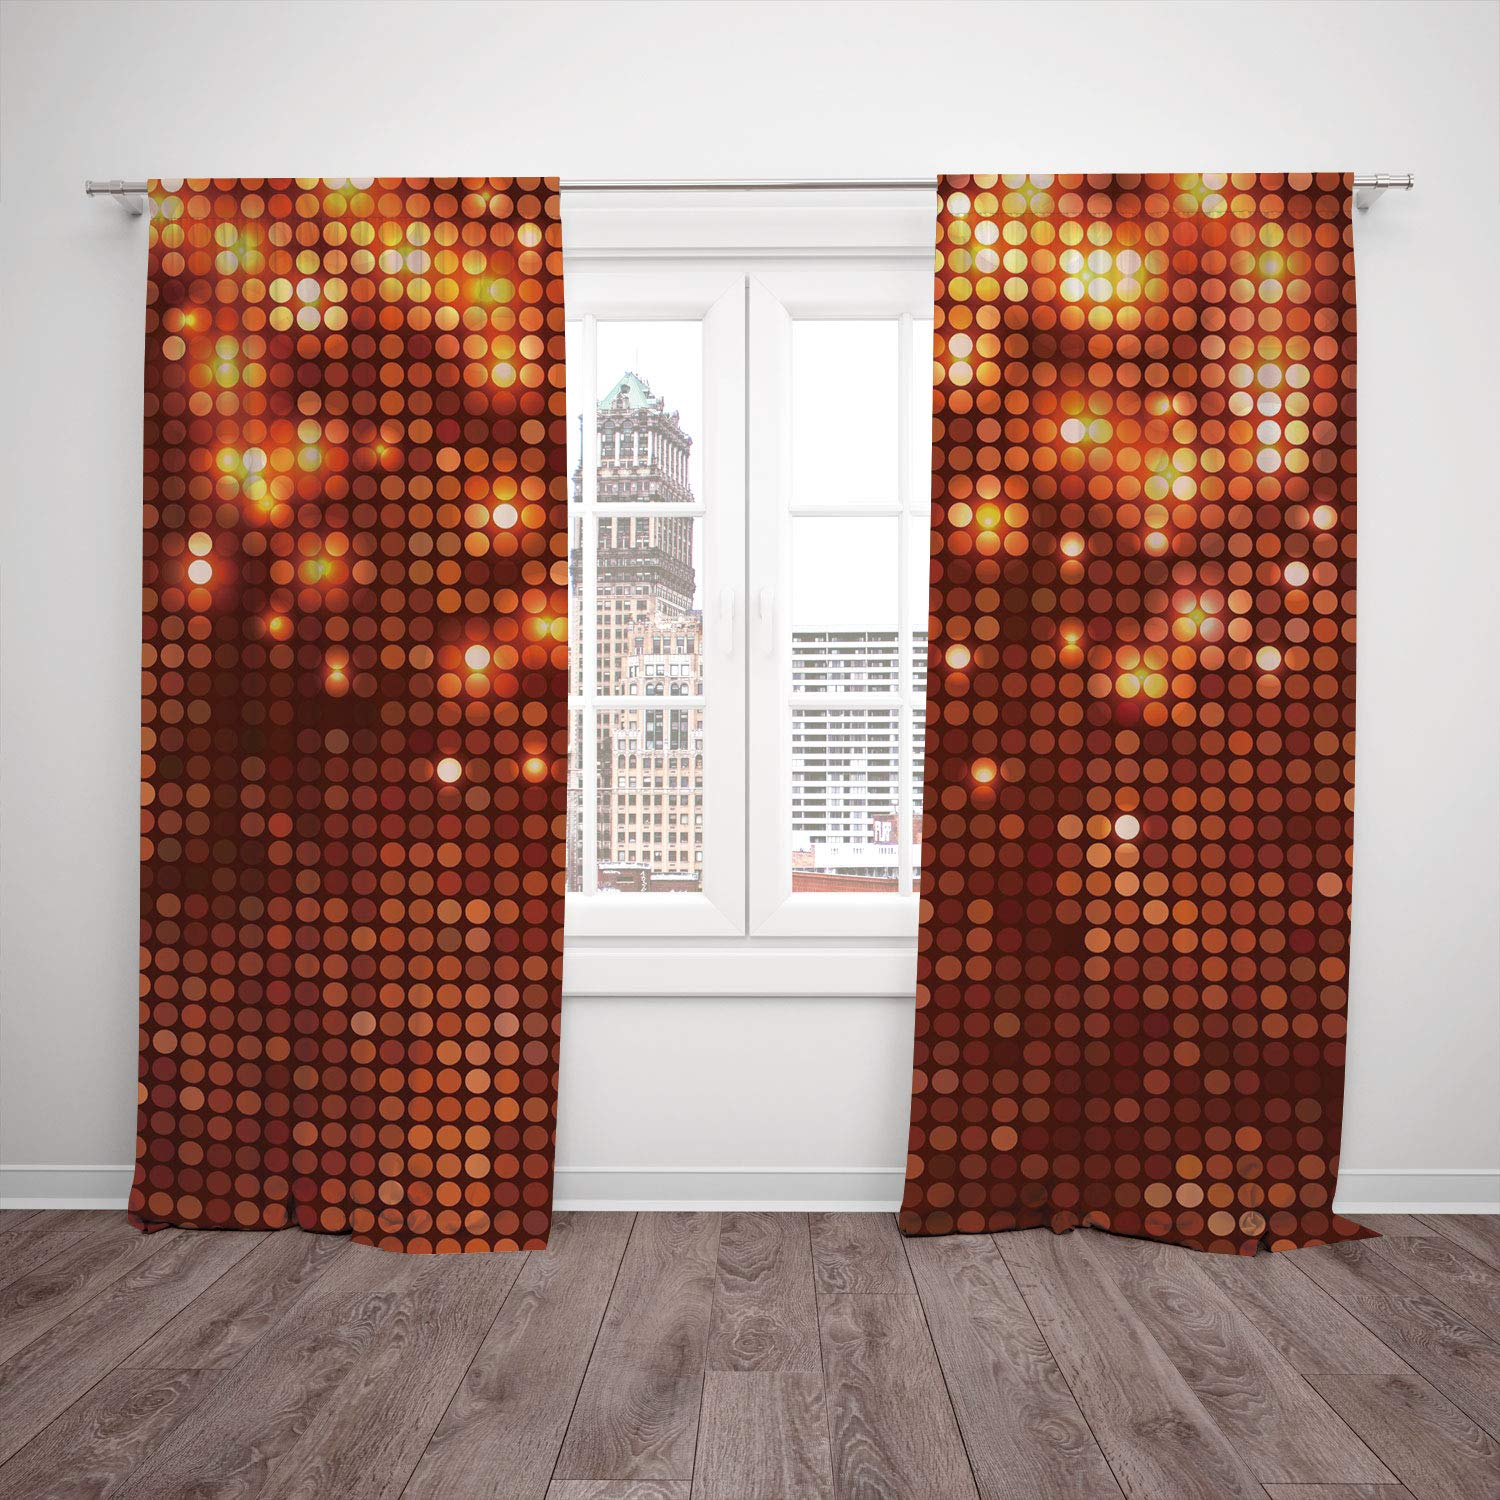 SCOCICI Satin Window Drapes Kitchen Curtains [ Copper Decor,Vibrant Colored Dots Spotted Mosaic Design Energetic Pattern Print Decorative,Burgundy Orange Yellow] Bedroom Living Room Dorm Kitchen Cafe